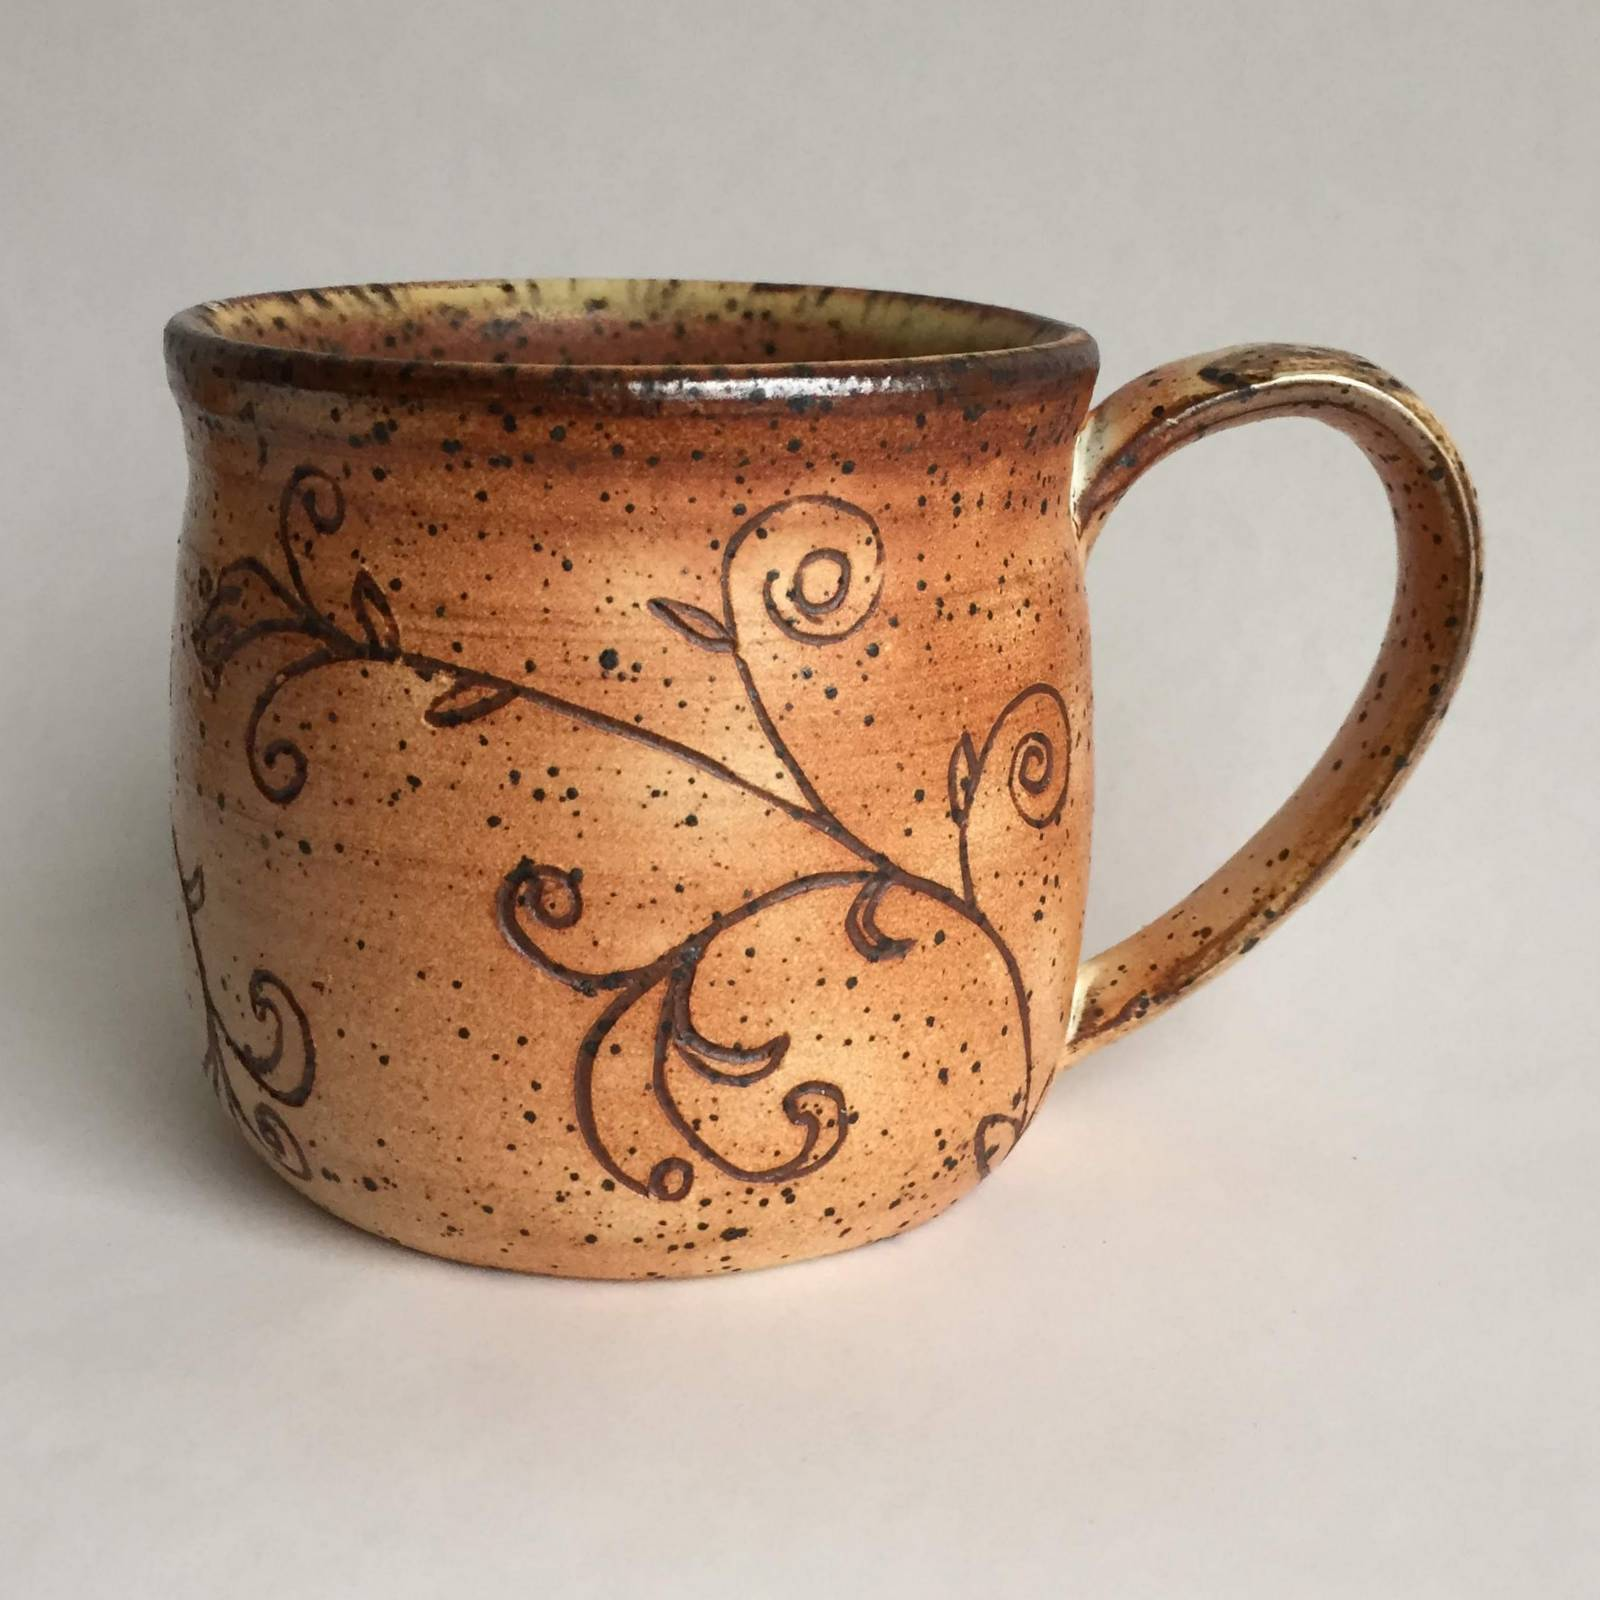 Soda Fired Mug with scribed design